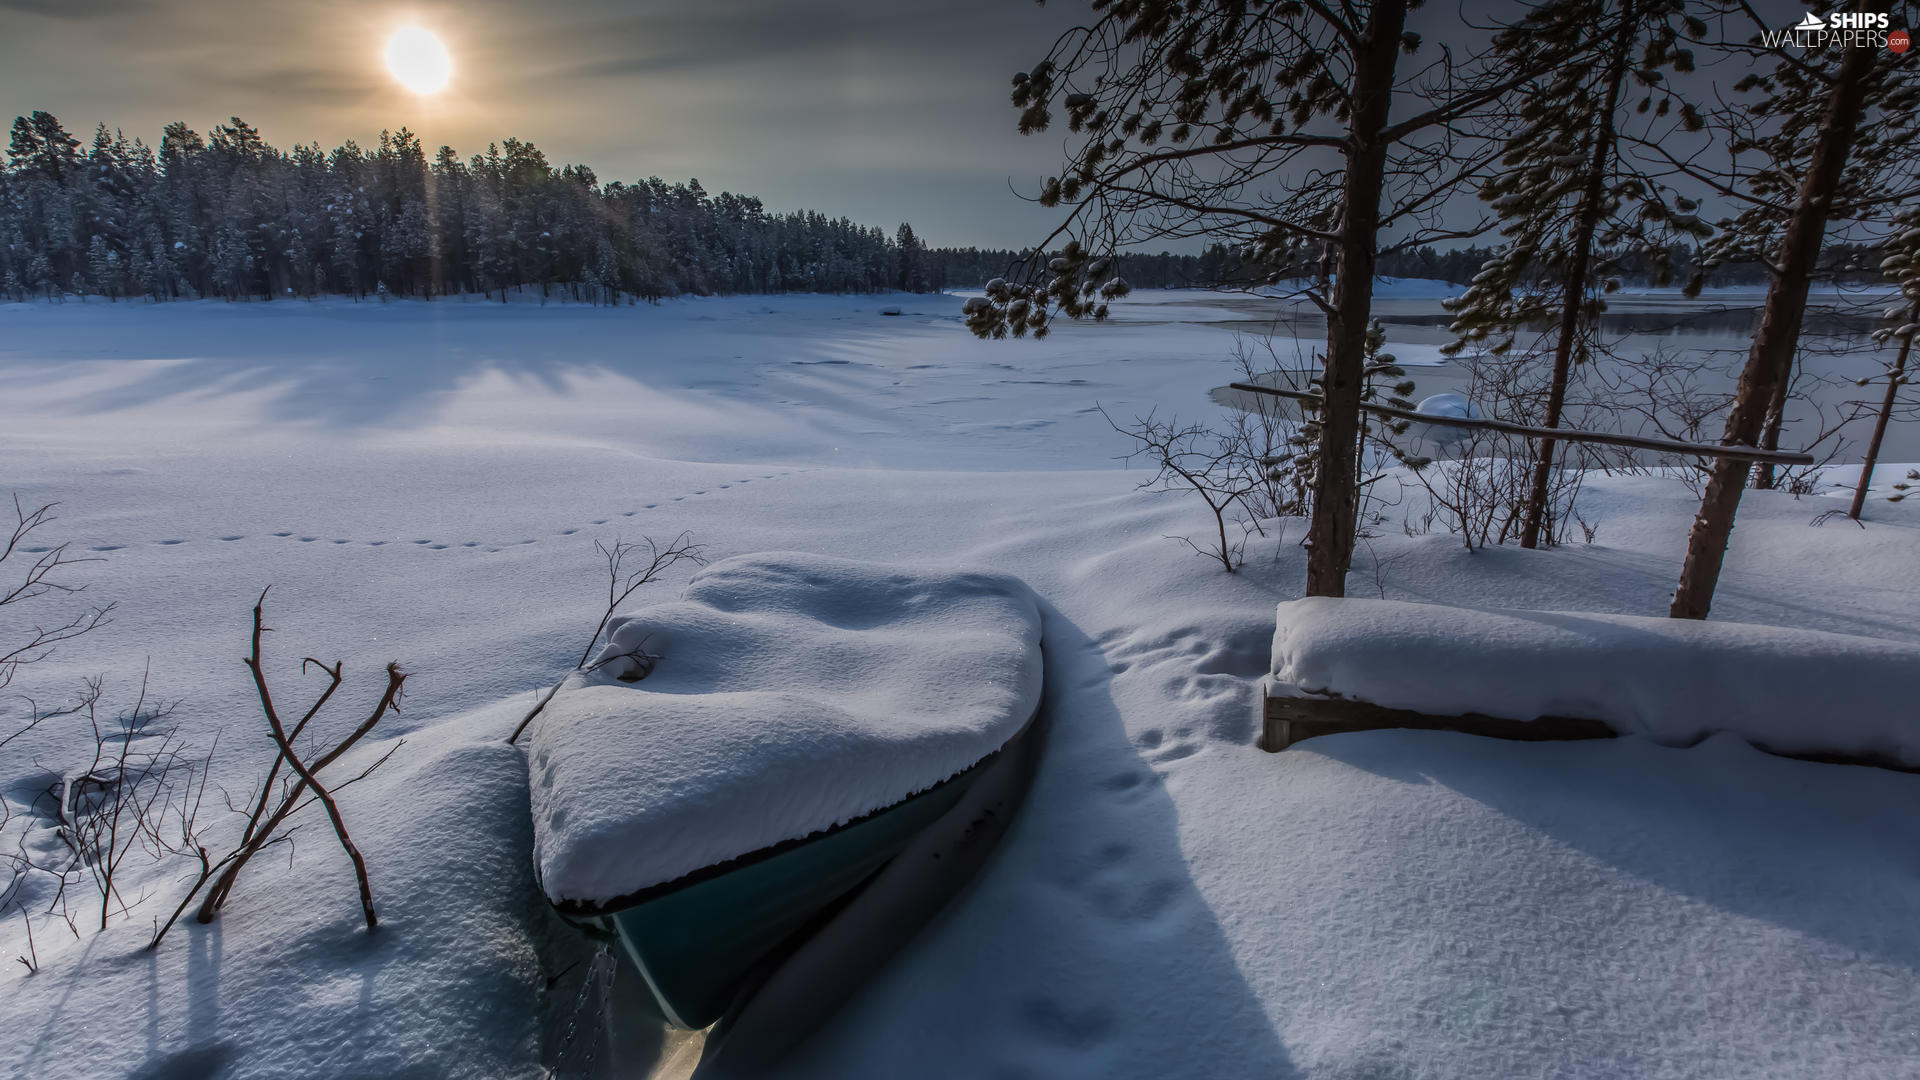 snowy, winter, lake, Boat, sun, traces, trees, viewes, snow